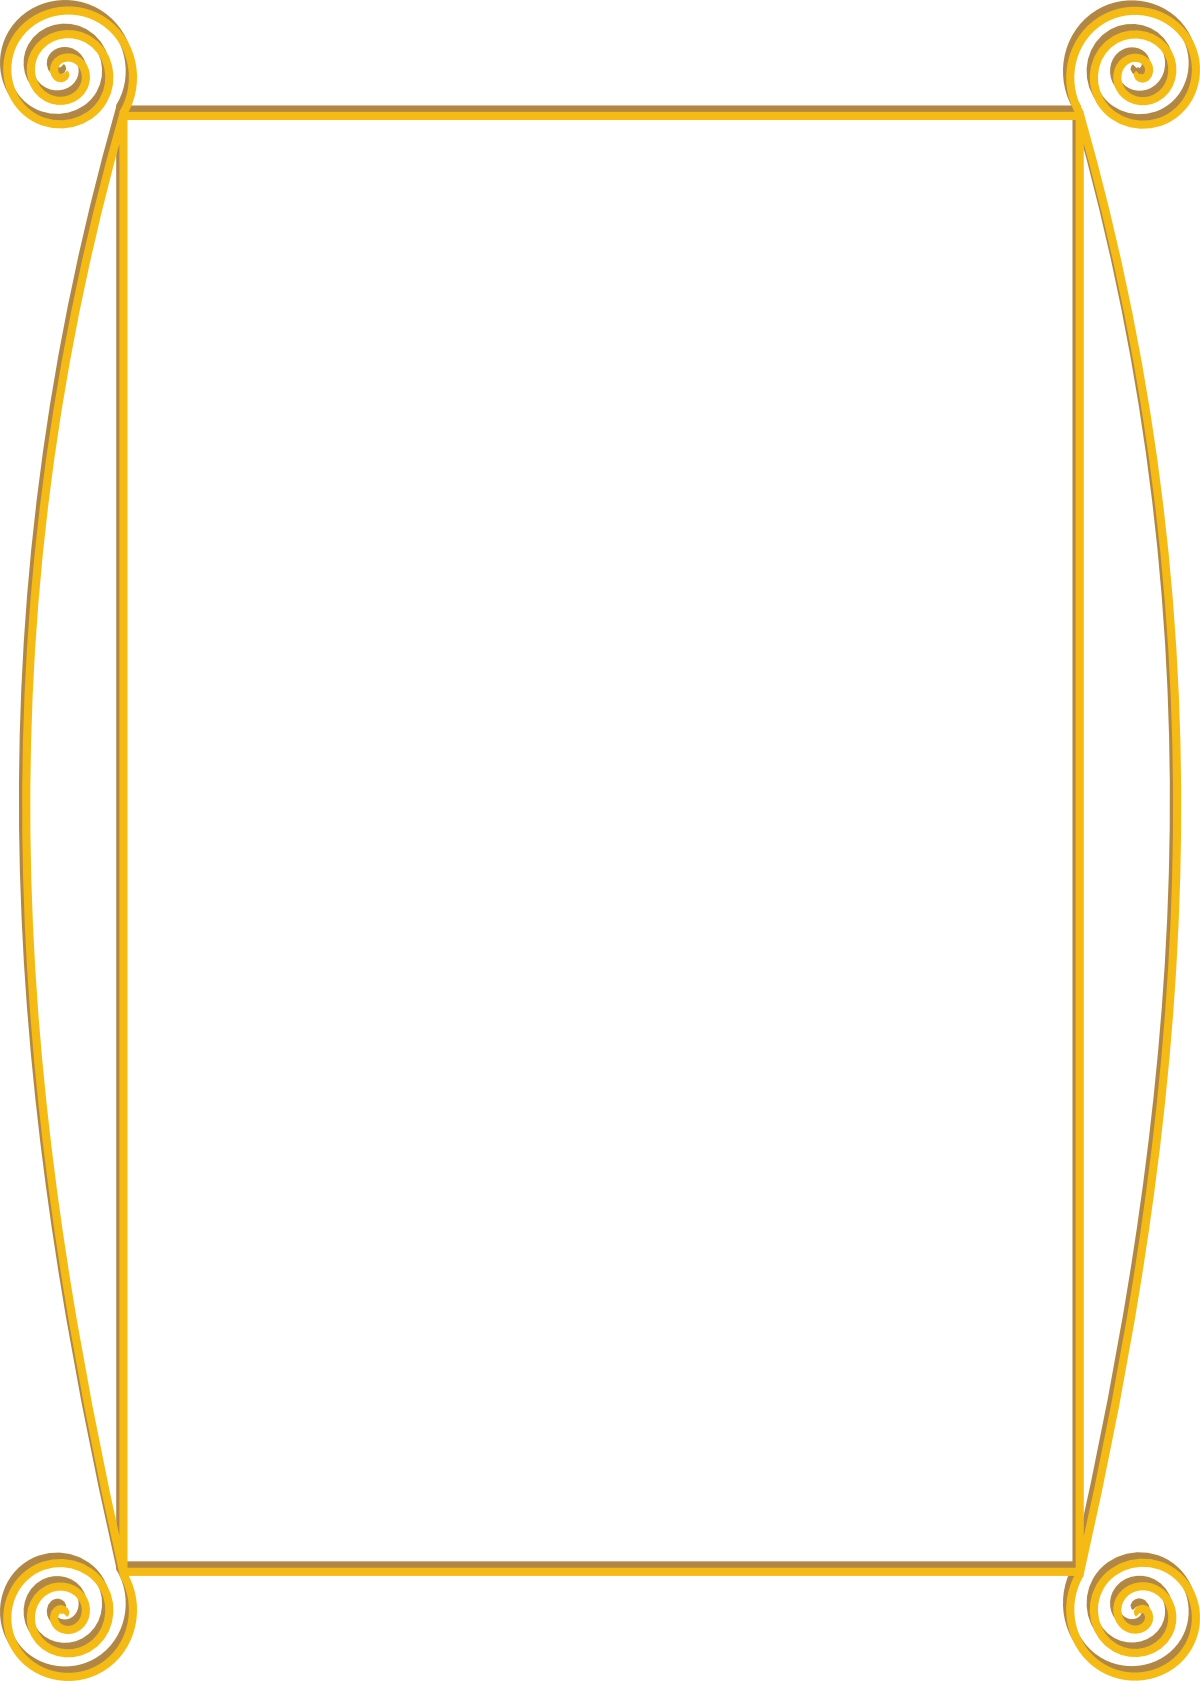 Gold borders clipart svg royalty free Free Golden Border Cliparts, Download Free Clip Art, Free Clip Art ... svg royalty free